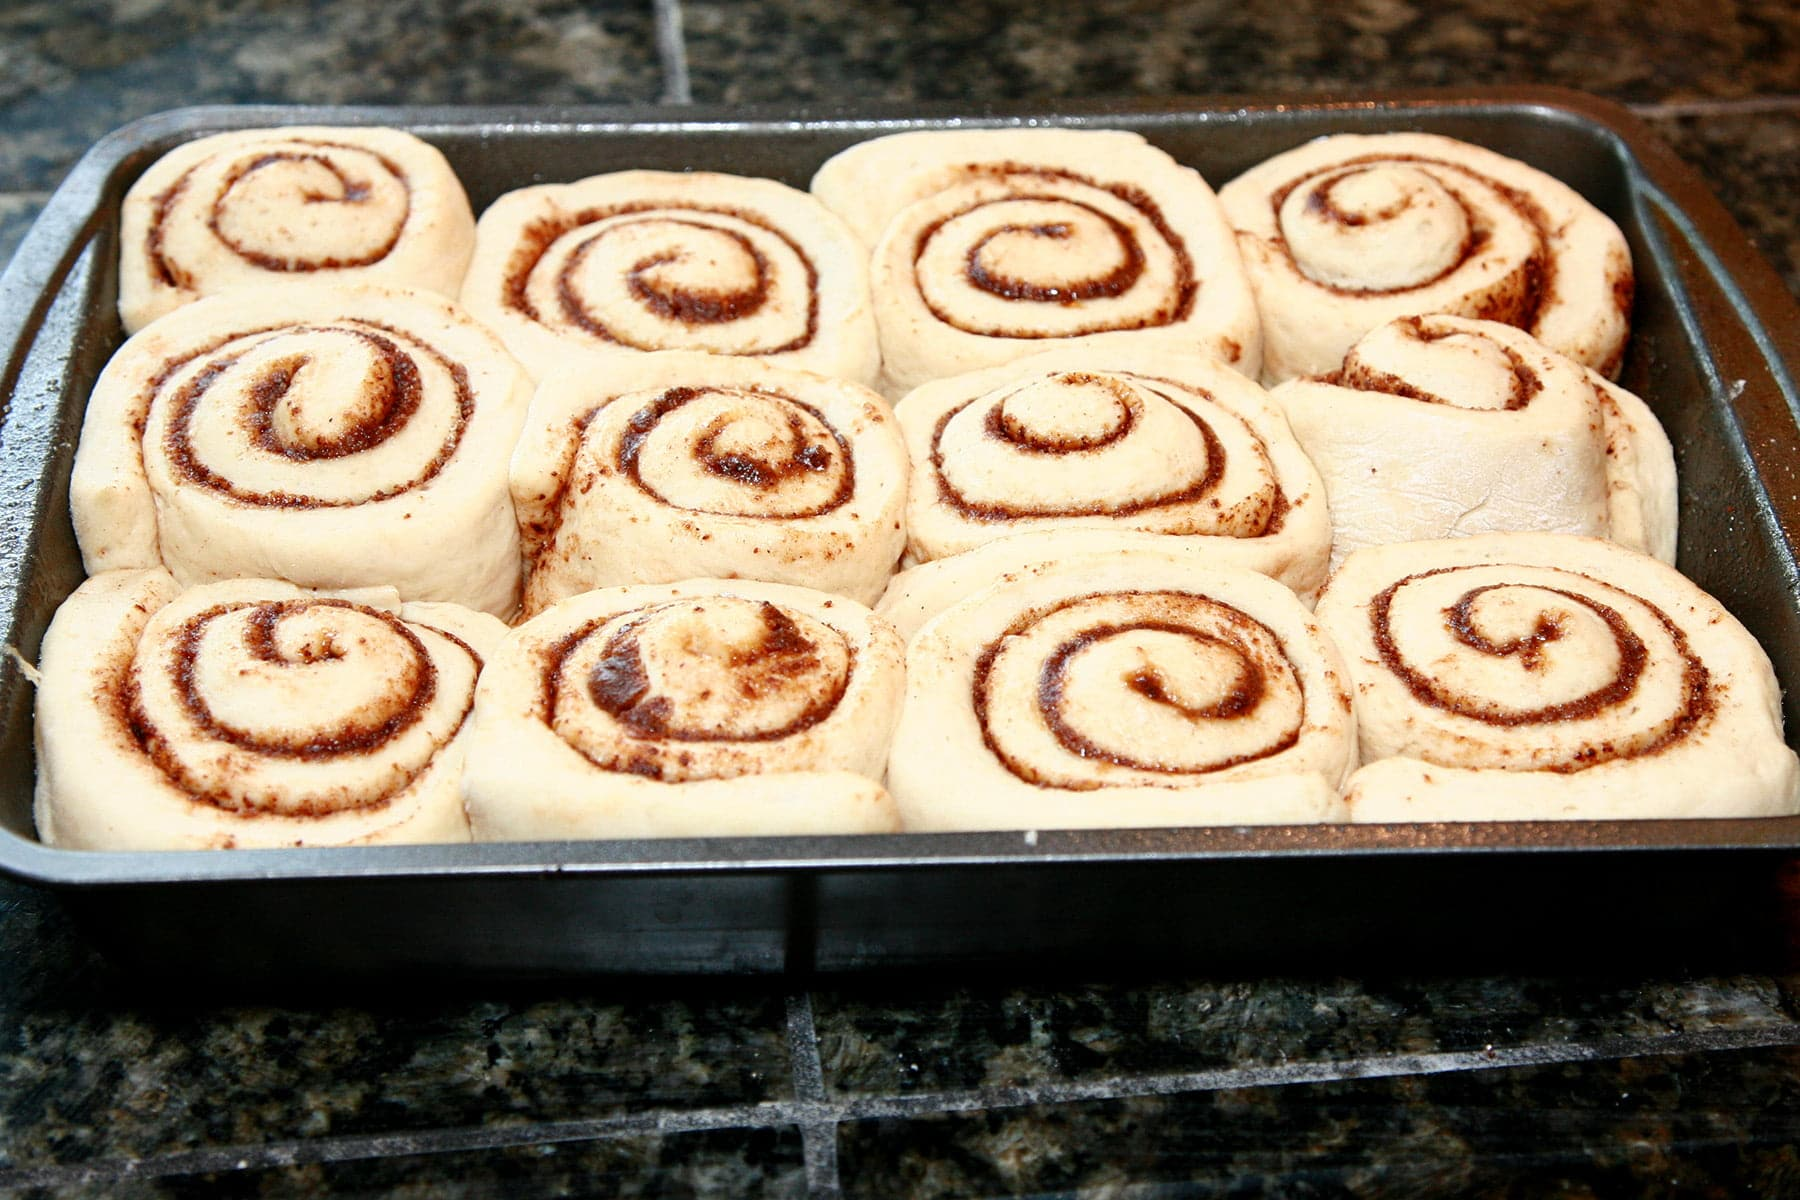 12 unbaked chai cinnamon rolls resting in a pan, after the final rise. They are now puffy and squishing up against each other.